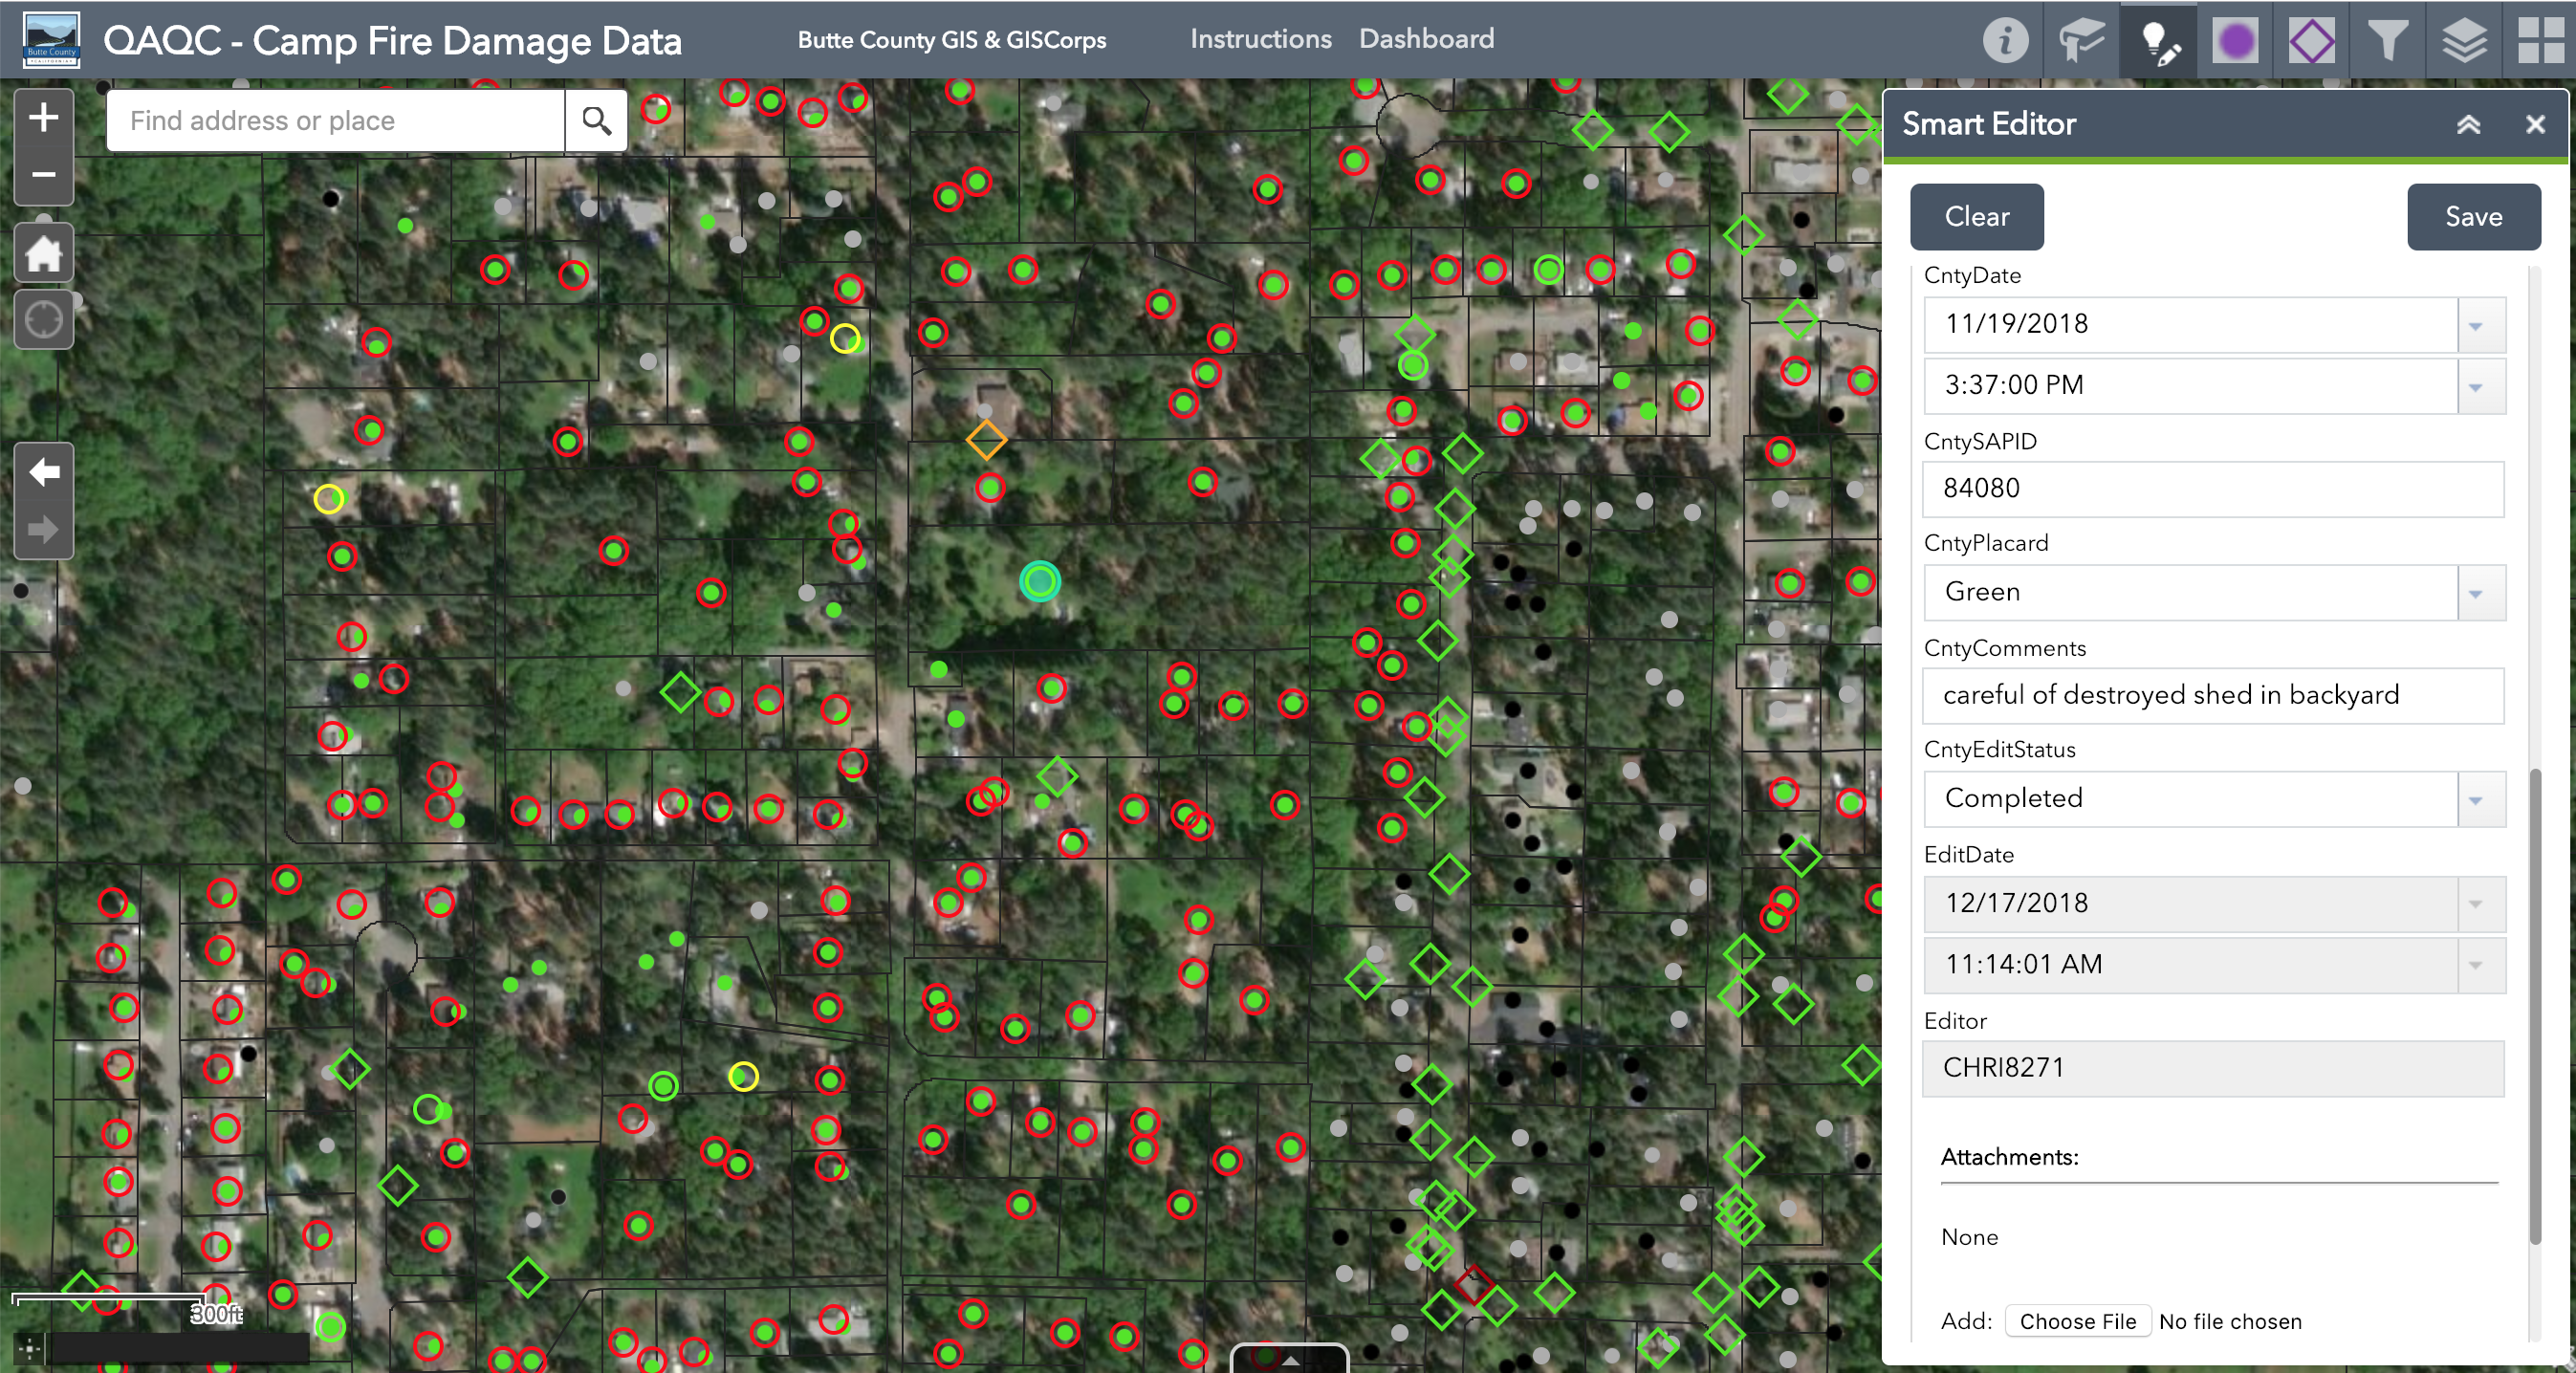 Consolidation Of Camp Fire Damage Data In Butte County, California